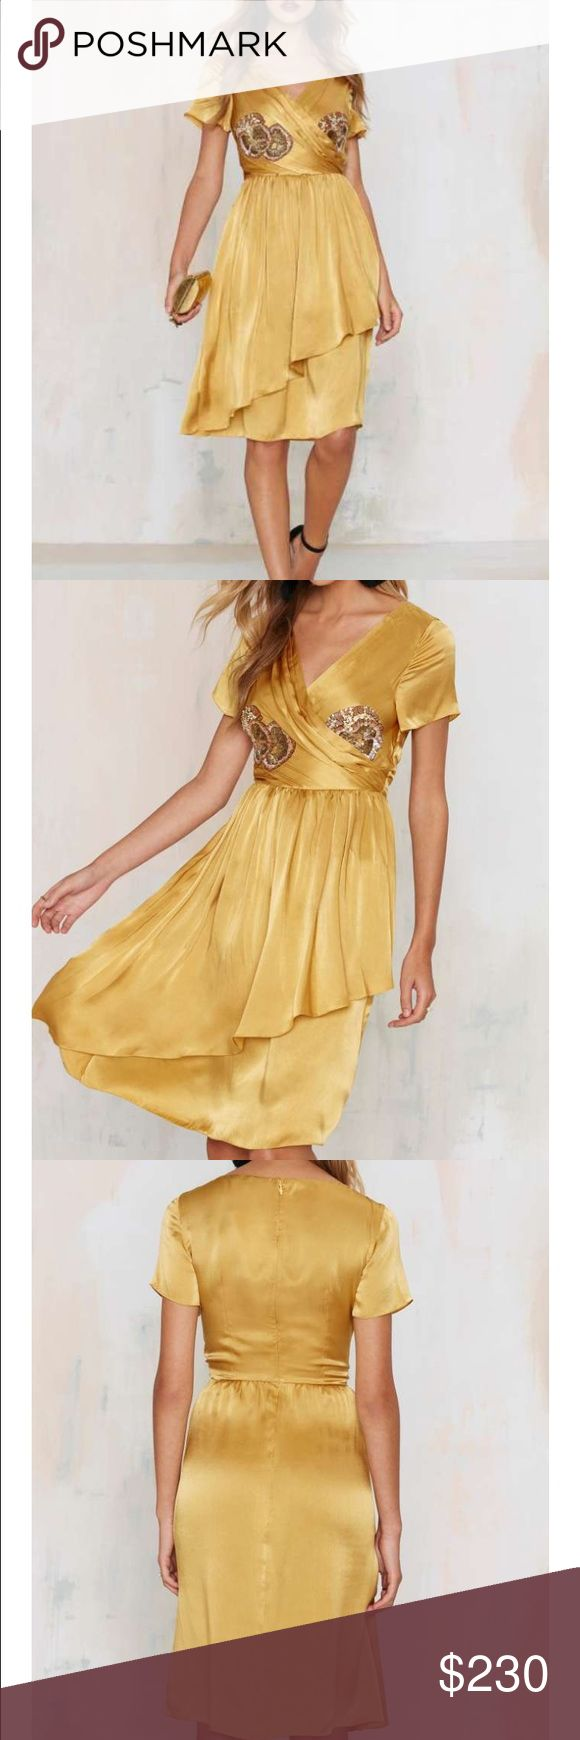 #43D Saunder Texas gold em dress 🐥🔵 The odds are in your favor. The Texas Gold 'Em dress comes in gold and features a plunging neckline, pleated wrap skirt, asymmetric hem, beaded floral appliqués at bust, and midi silhouette. Looks amazing with a floppy straw hat and wooden wedges. By Saunder.  *Silk  *Runs true to size  *Model is wearing size 2  *Dry clean only  *Imported Nasty Gal Dresses Mini